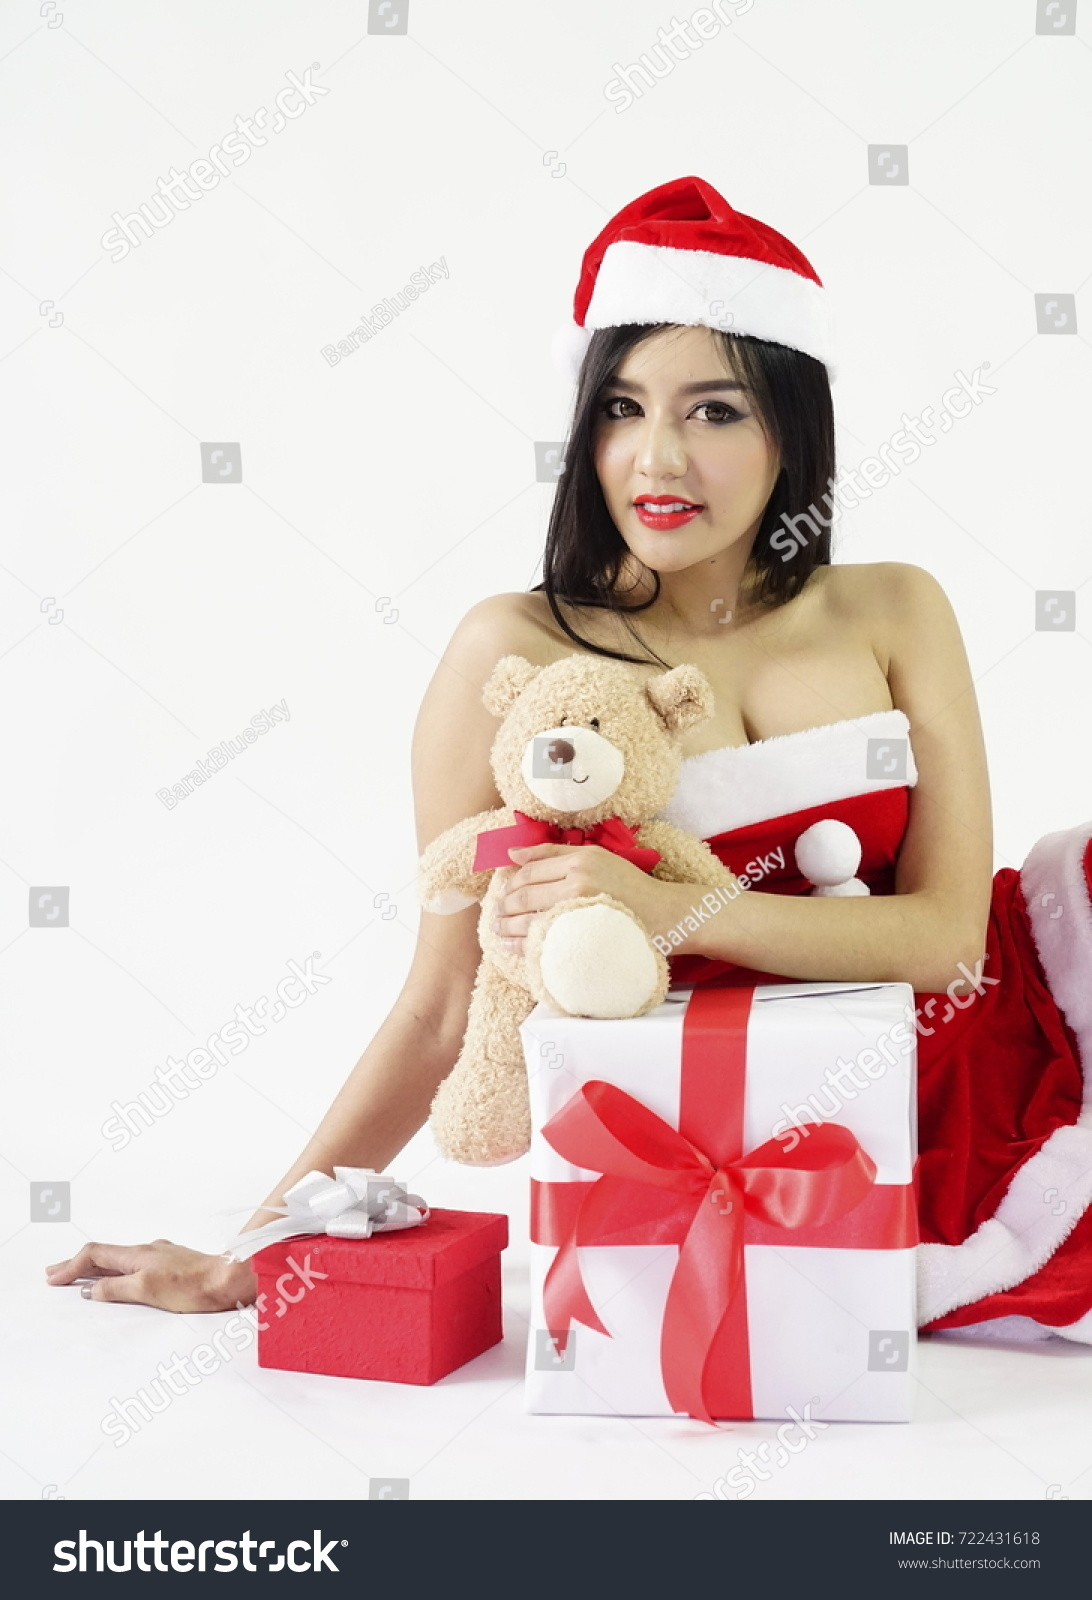 eb4f764868ed6 Sexy woman wear red Santa dress and Santa hat with gift boxes and teddy bear  on